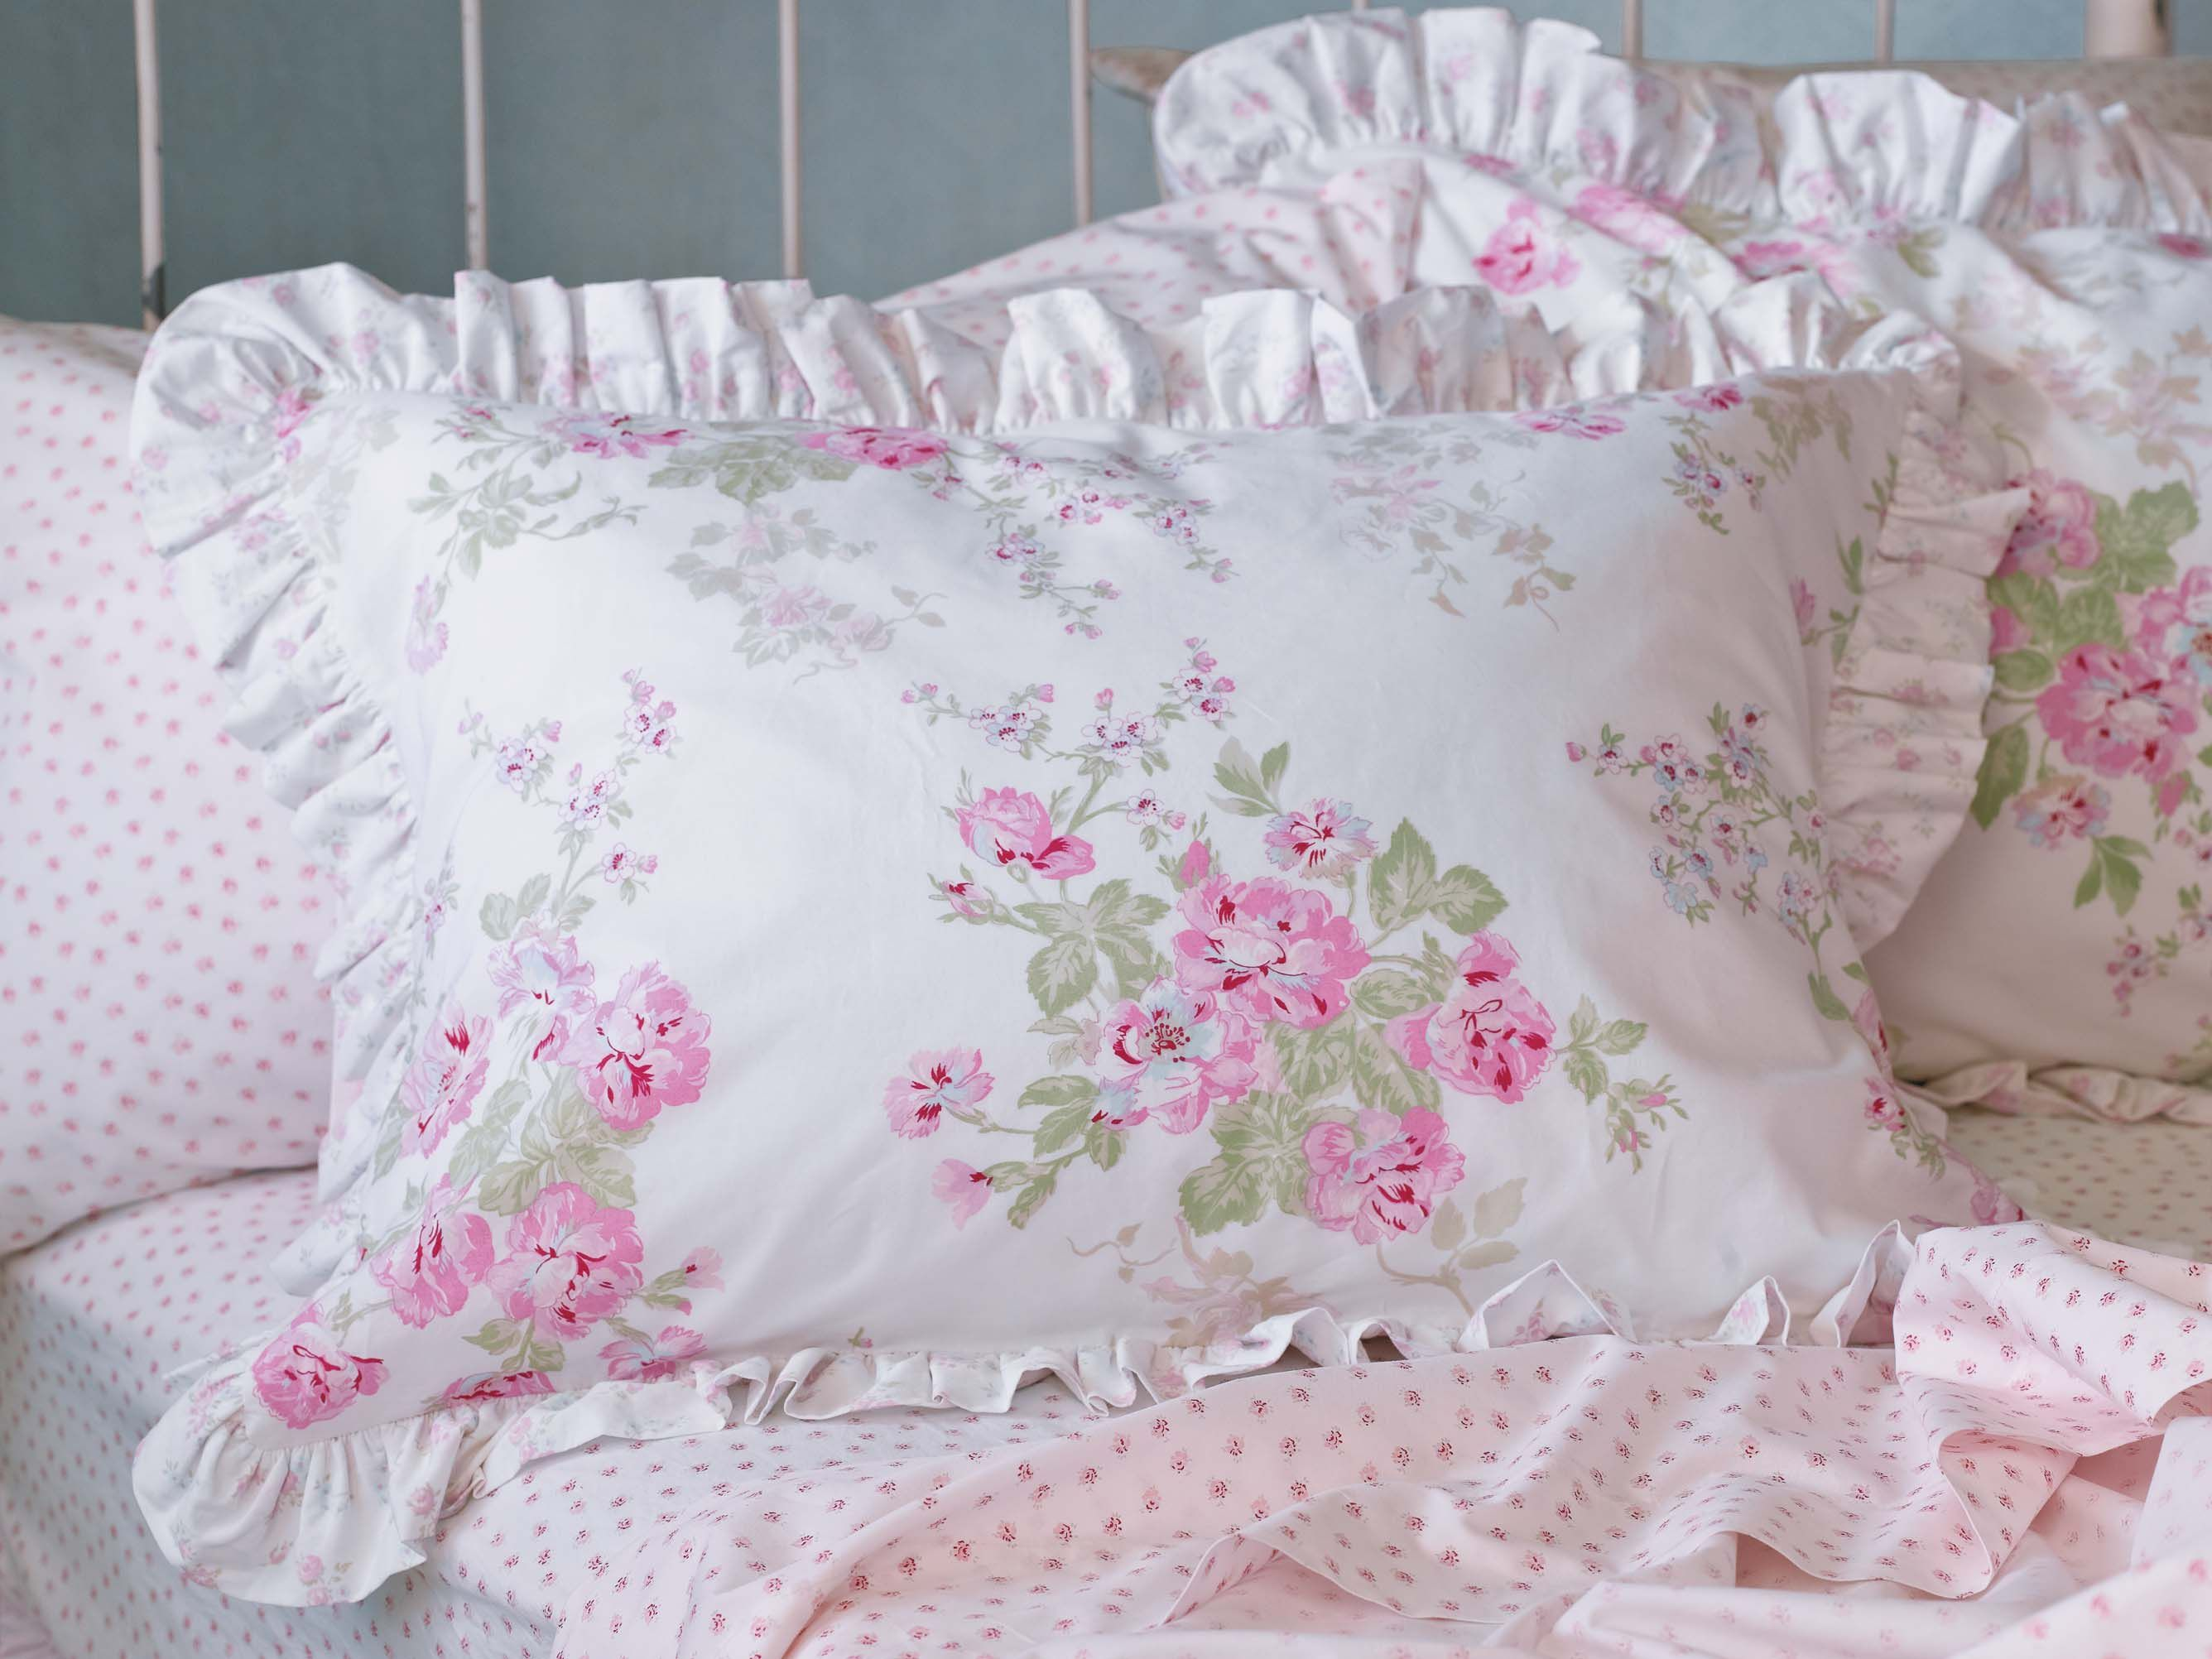 Simply Shabby Chic This Is My Set That I Picked Out For The Country House Shabby Chic Pillows Shabby Chic Bedding Target Shabby Chic Bedding